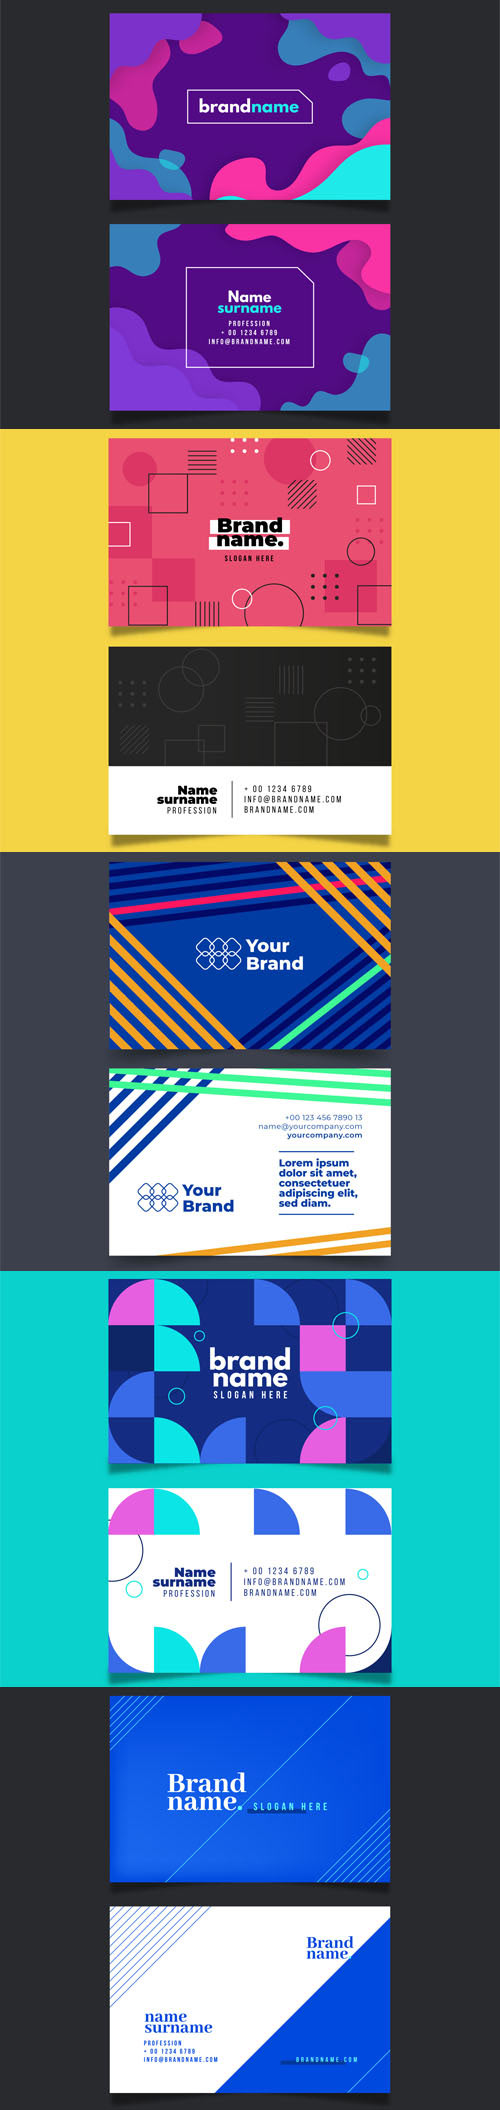 10 Best Business Card Templates in Vector